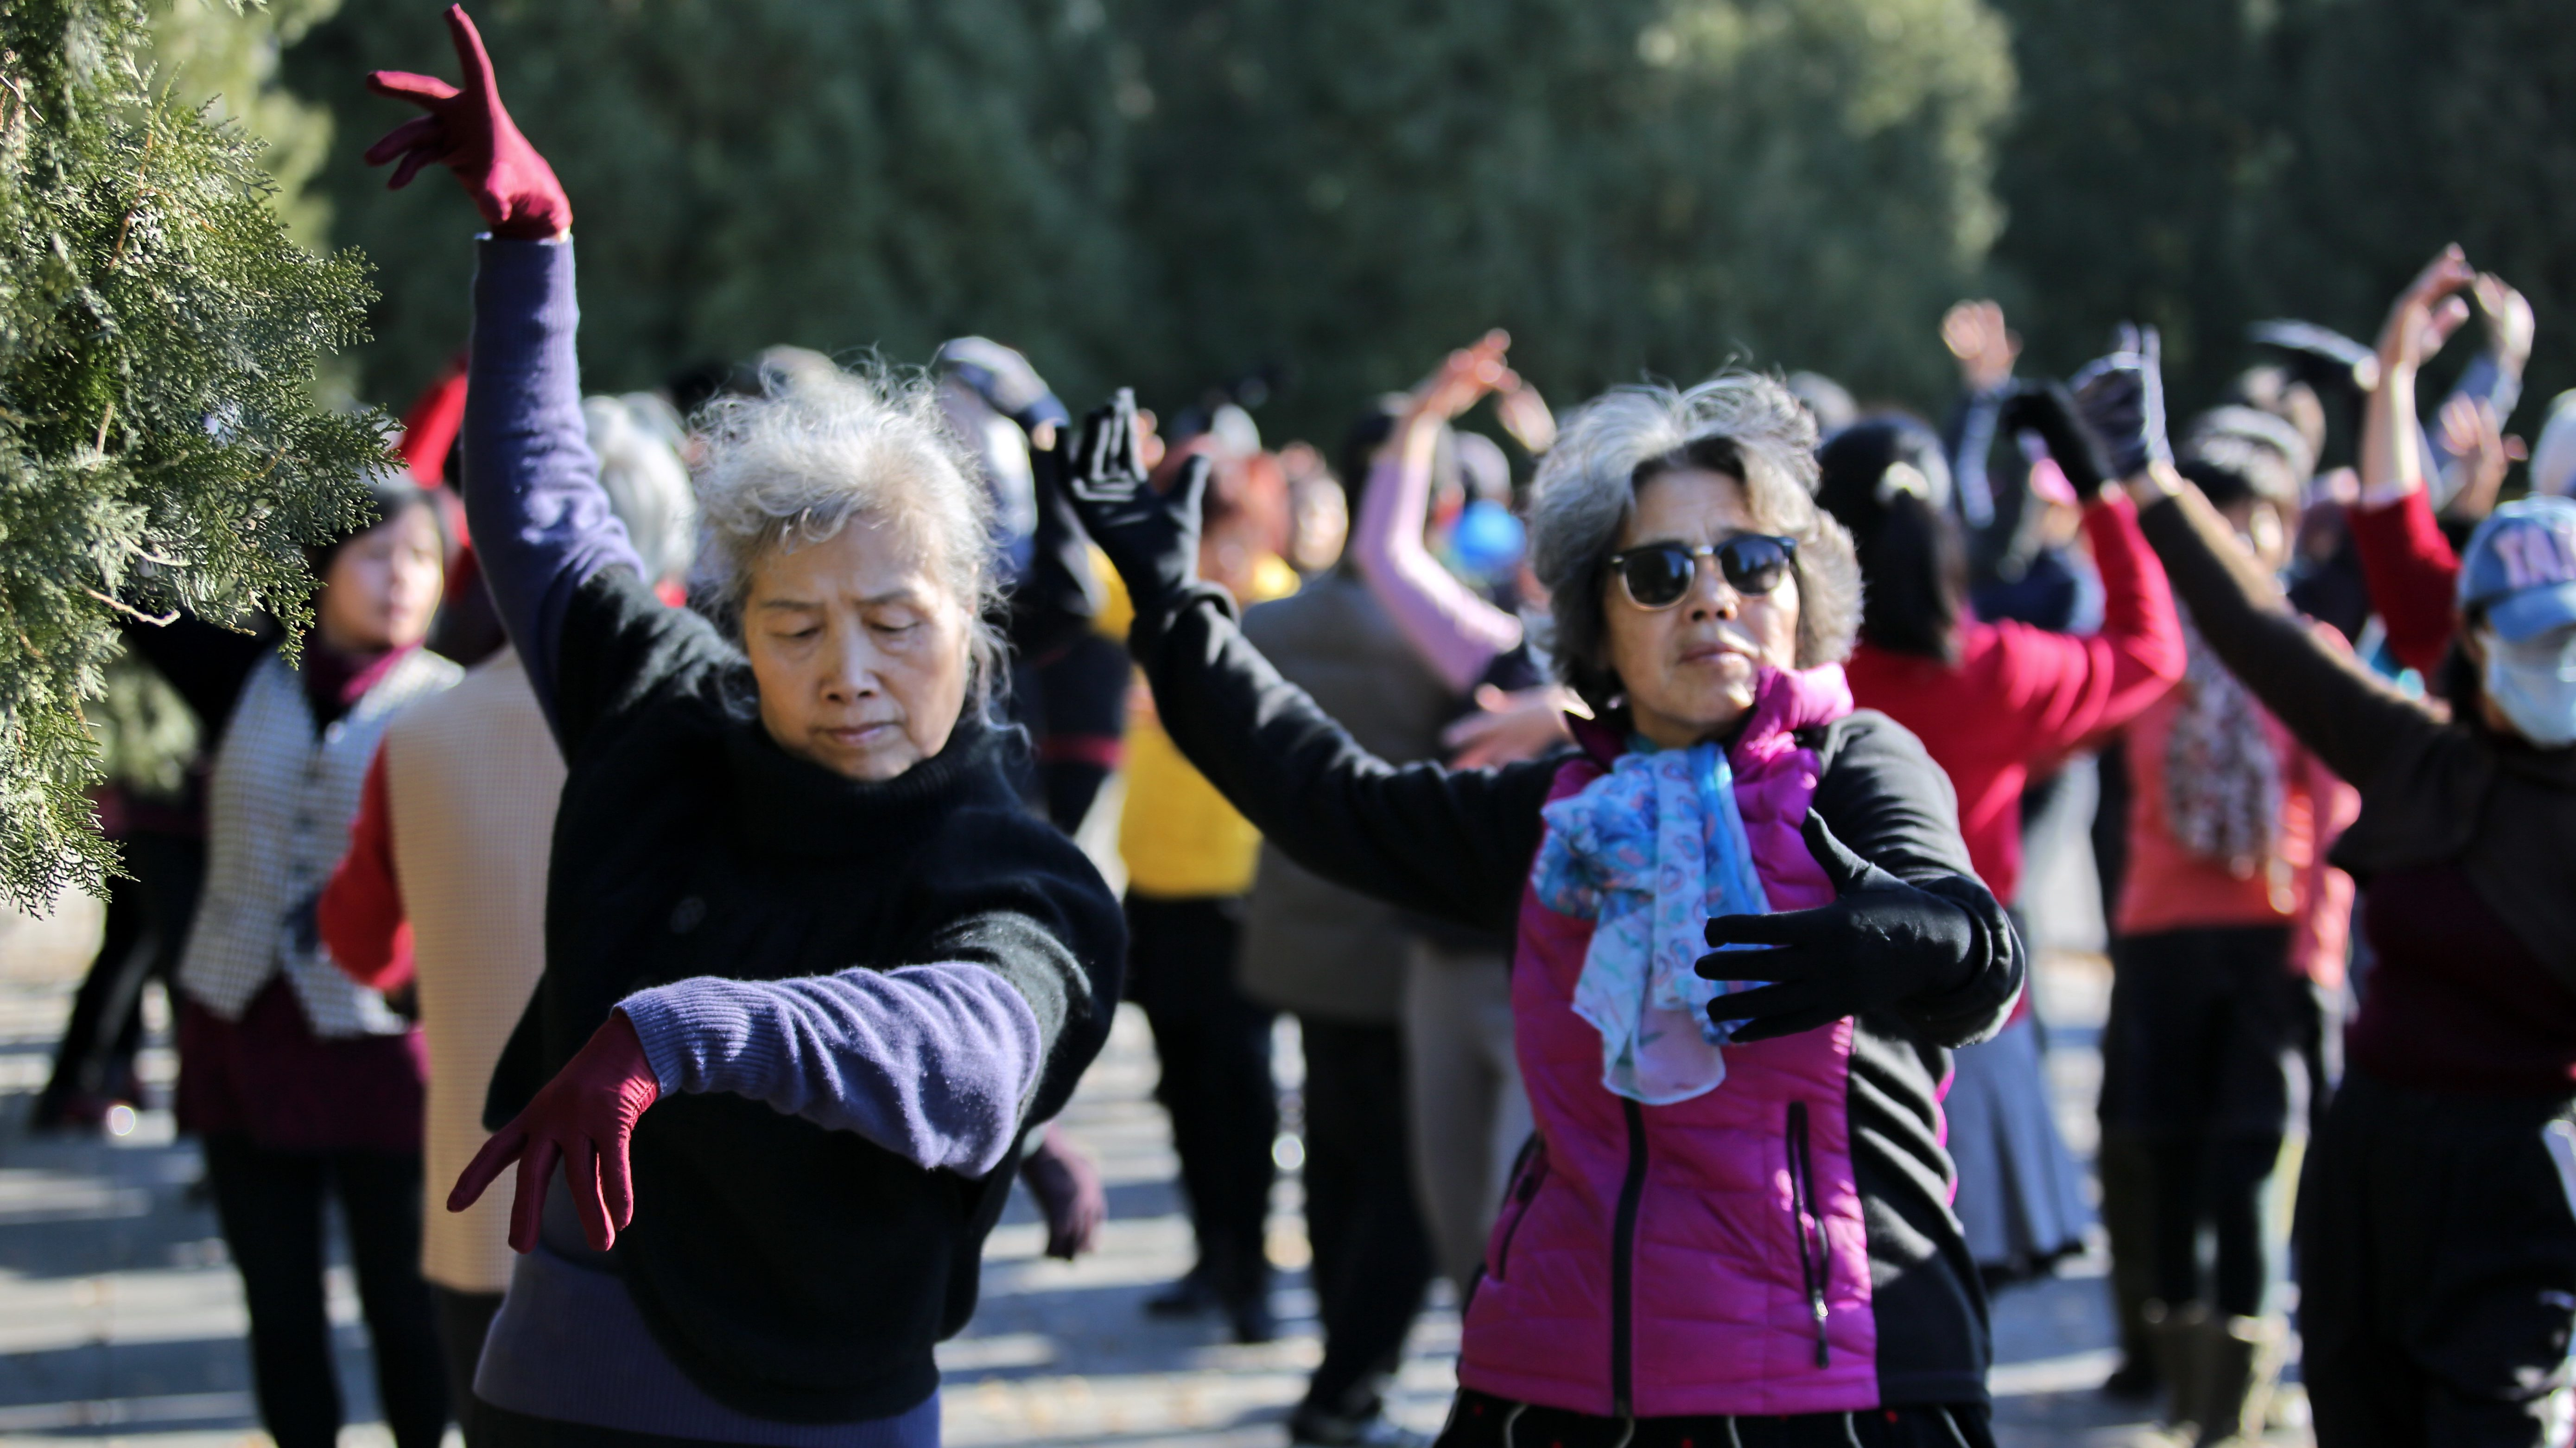 Women dance in a park in Beijing, China December 15, 2015. REUTERS/Stringer ATTENTION EDITORS - THIS PICTURE WAS PROVIDED BY A THIRD PARTY. THIS PICTURE IS DISTRIBUTED EXACTLY AS RECEIVED BY REUTERS, AS A SERVICE TO CLIENTS. CHINA OUT. NO COMMERCIAL OR EDITORIAL SALES IN CHINA. - RTX1YW9H